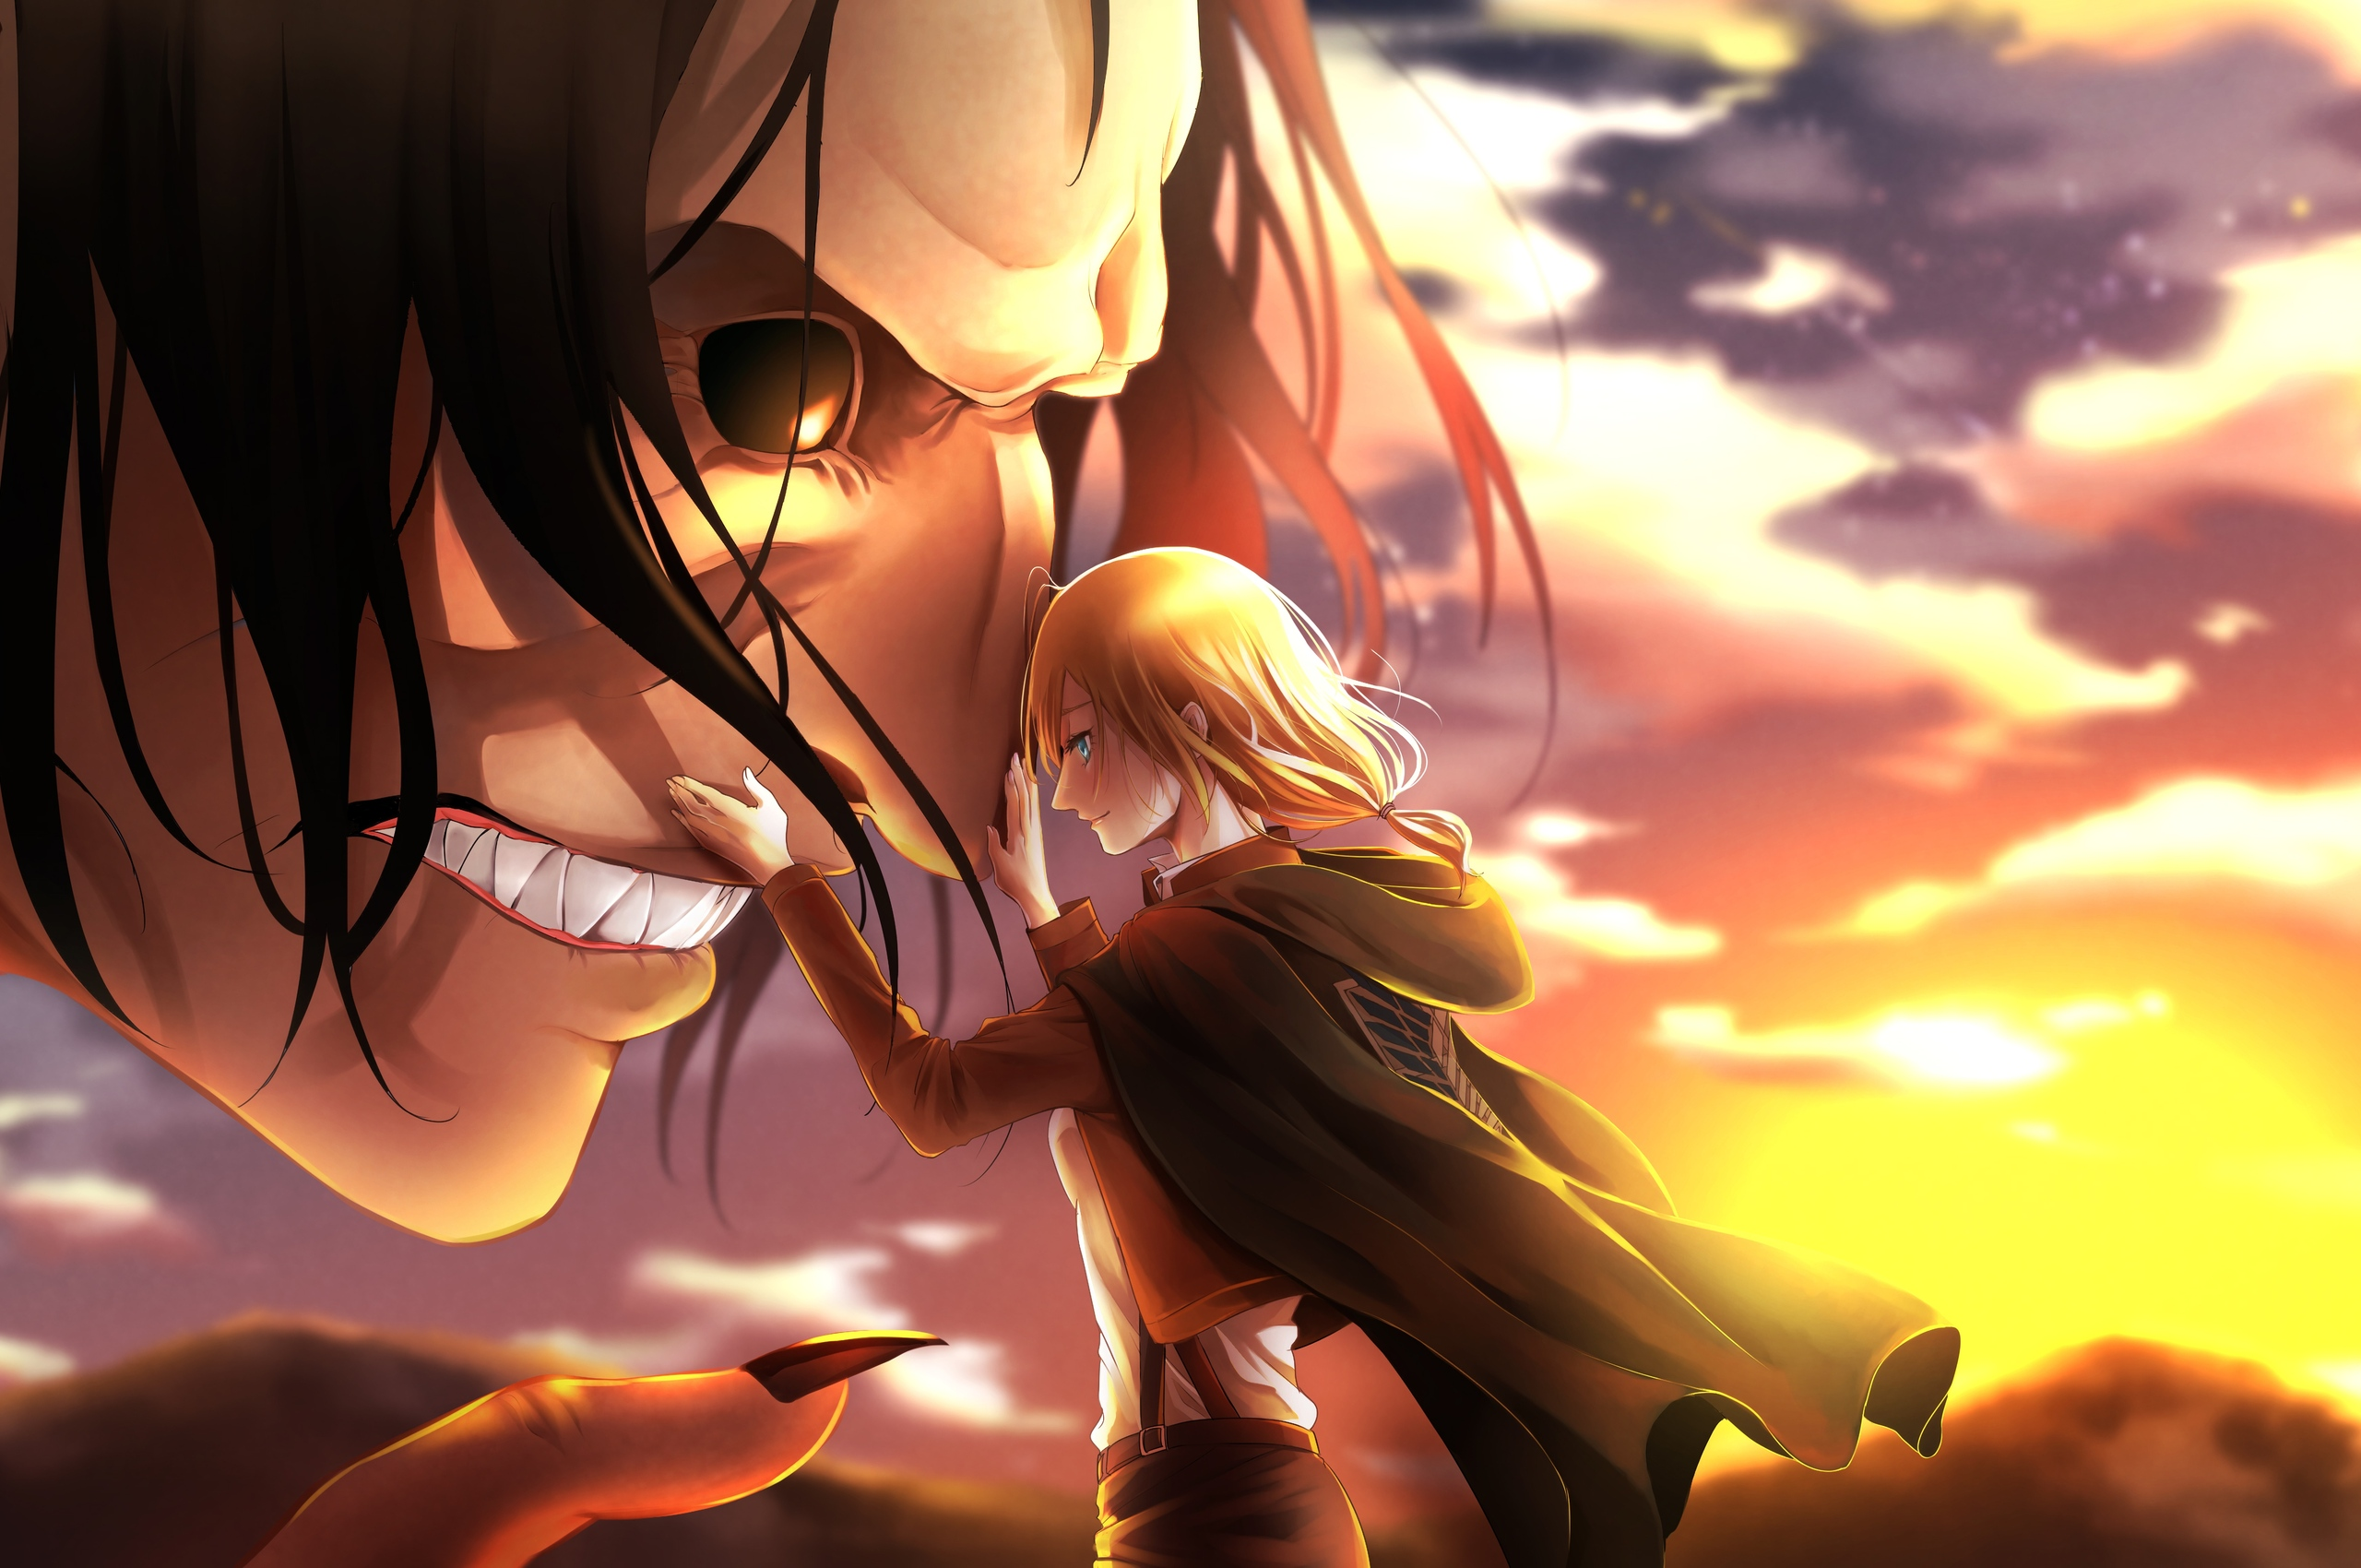 2560x1700 Attack On Titan Mina Carolina Chromebook Pixel Hd 4k Wallpapers Images Backgrounds Photos And Pictures